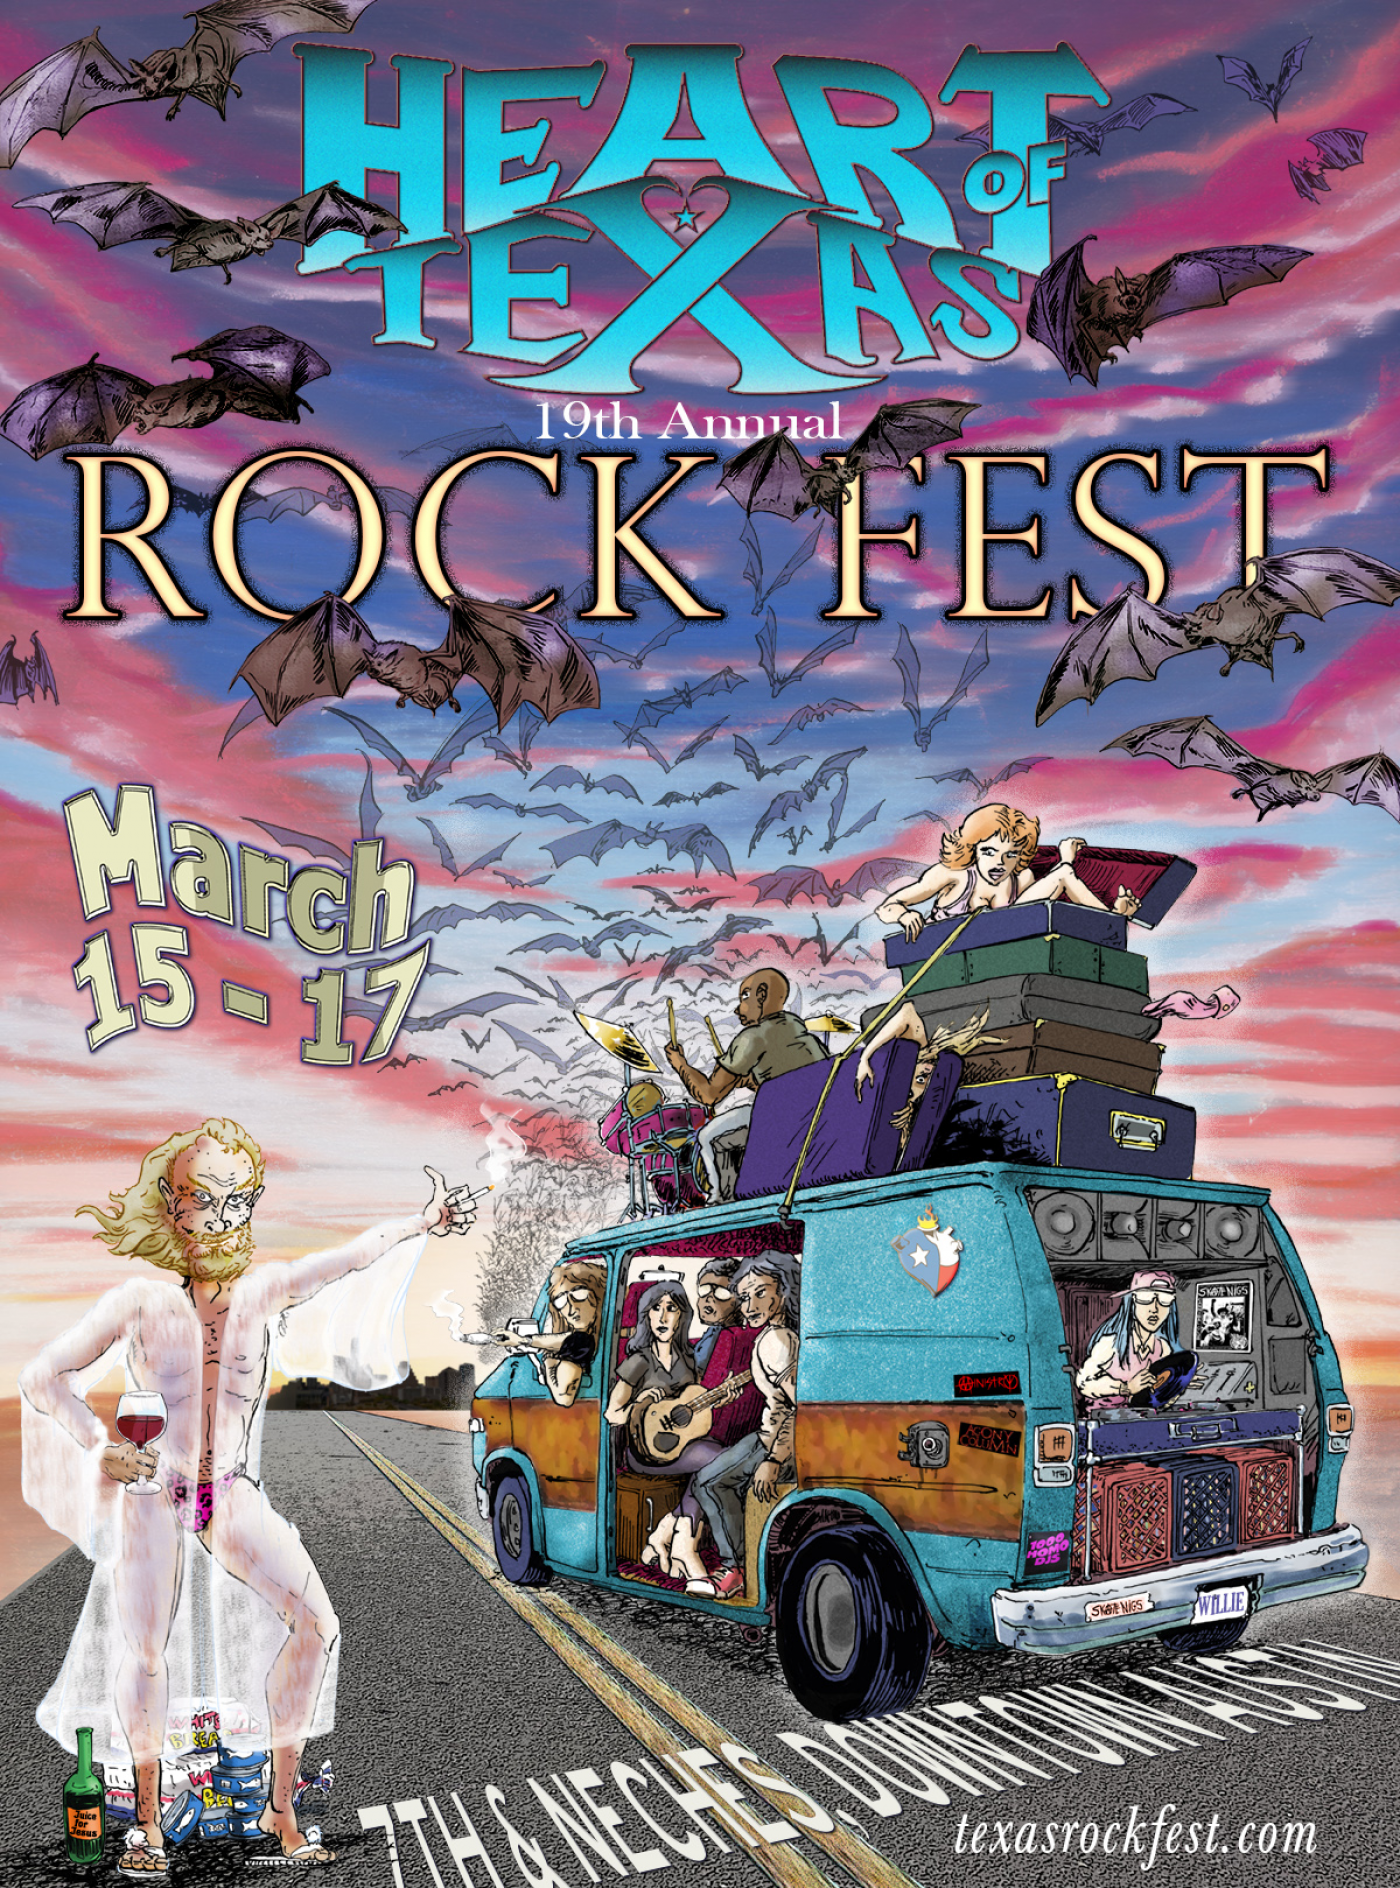 Heart of Texas Rockfest